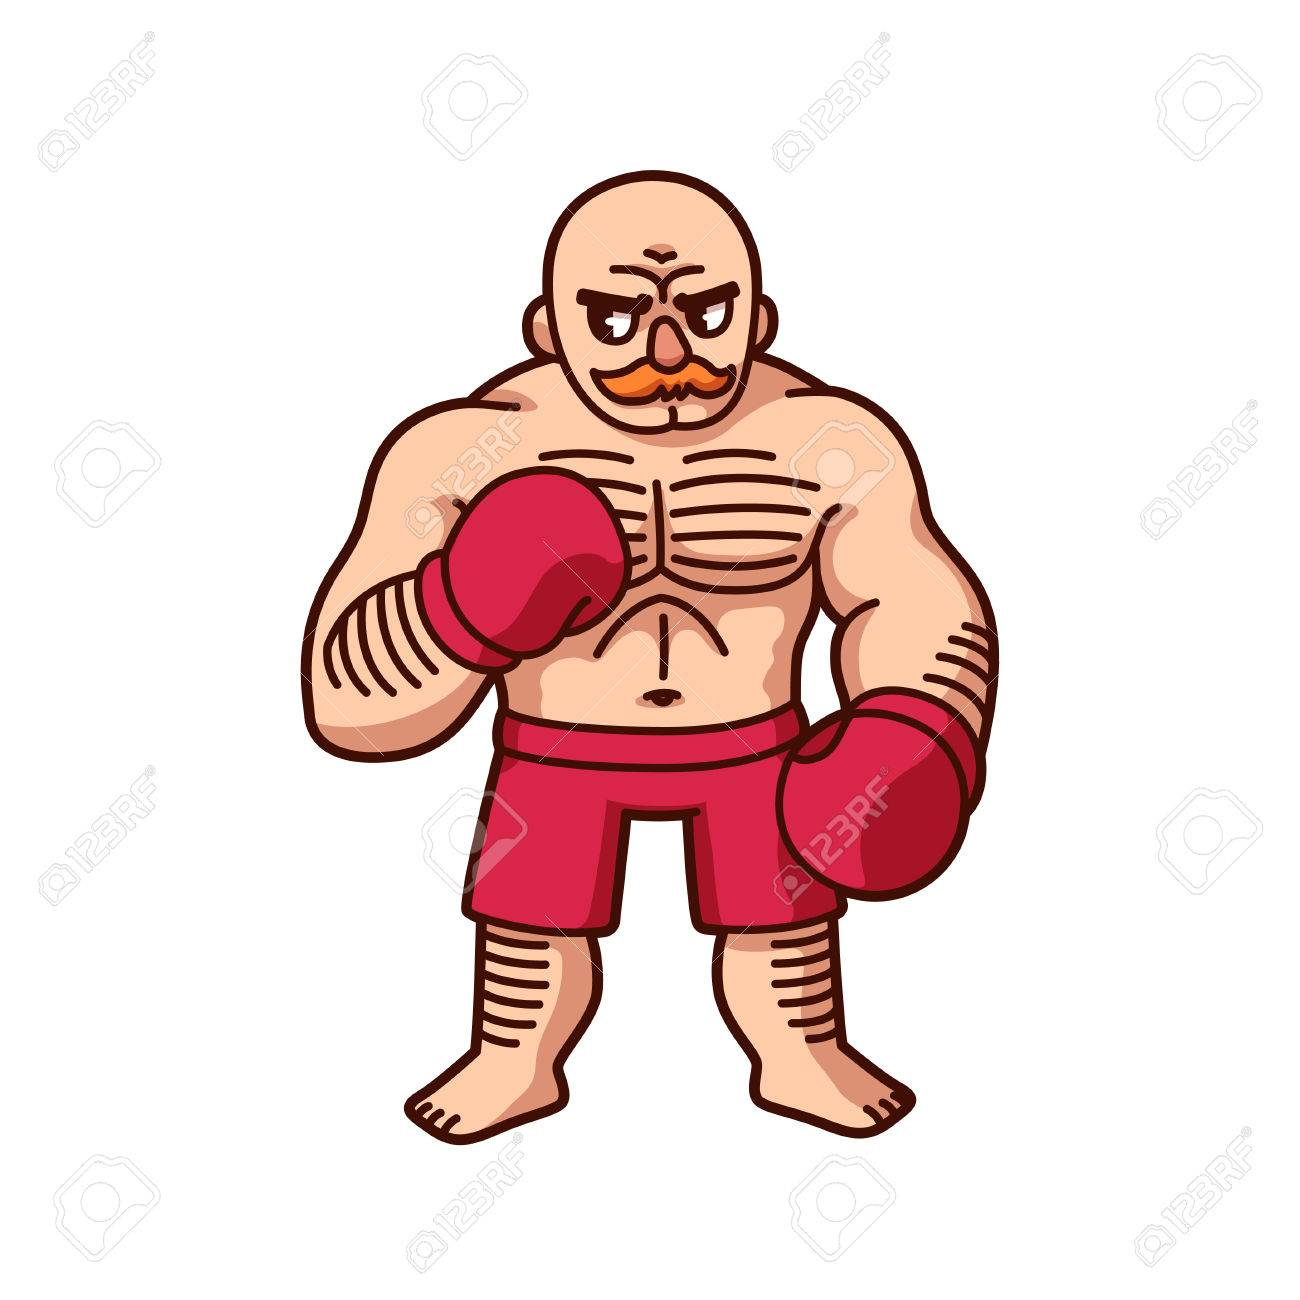 Skinny boxer clipart vector royalty free Free Boxer Clipart boxing man, Download Free Clip Art on ... vector royalty free